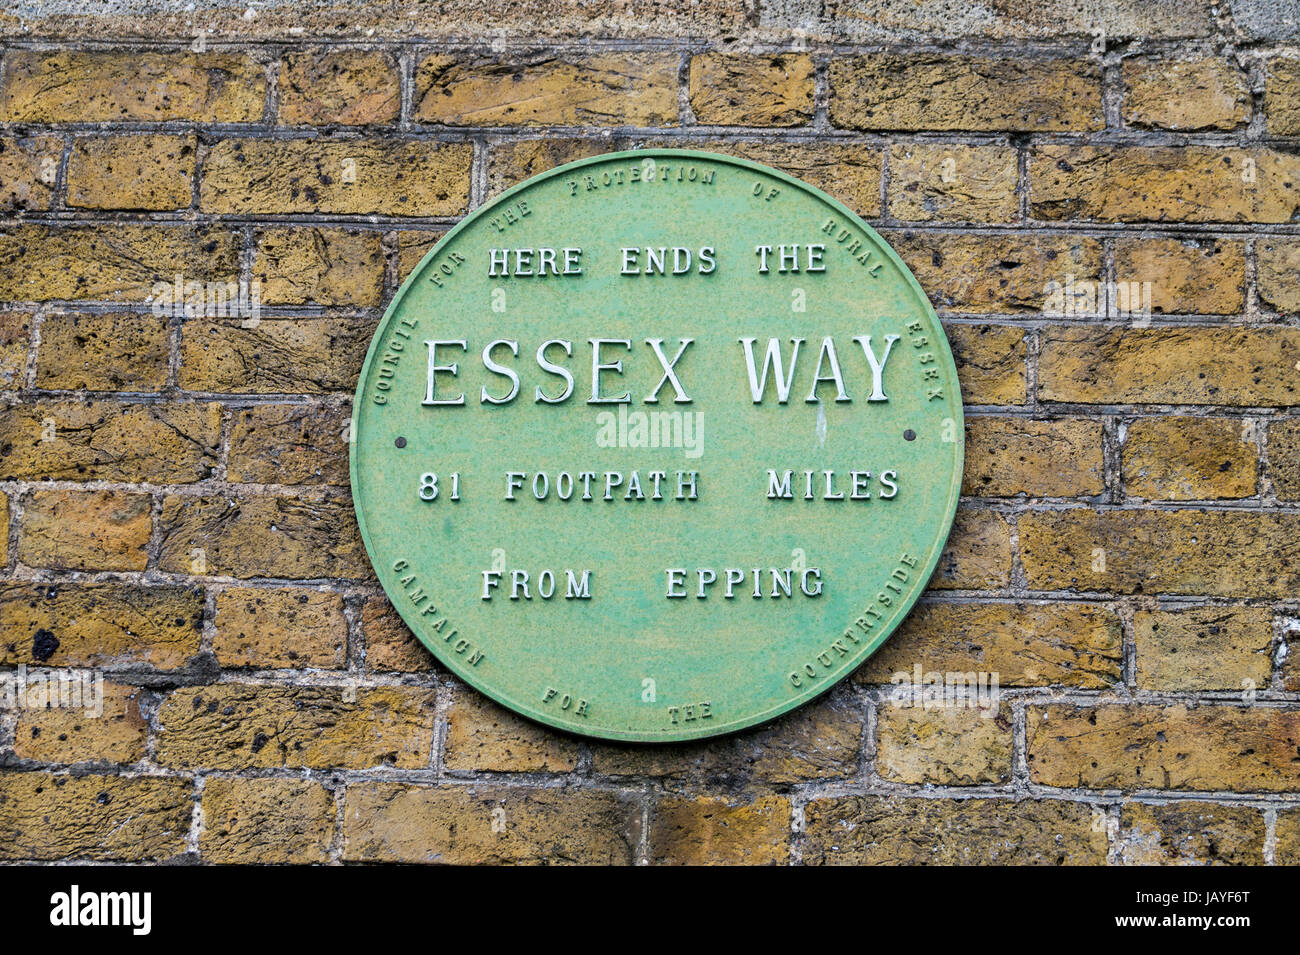 plaque-marking-the-end-of-the-essex-way-high-lighthouse-harwich-essex-JAYF6T.jpg